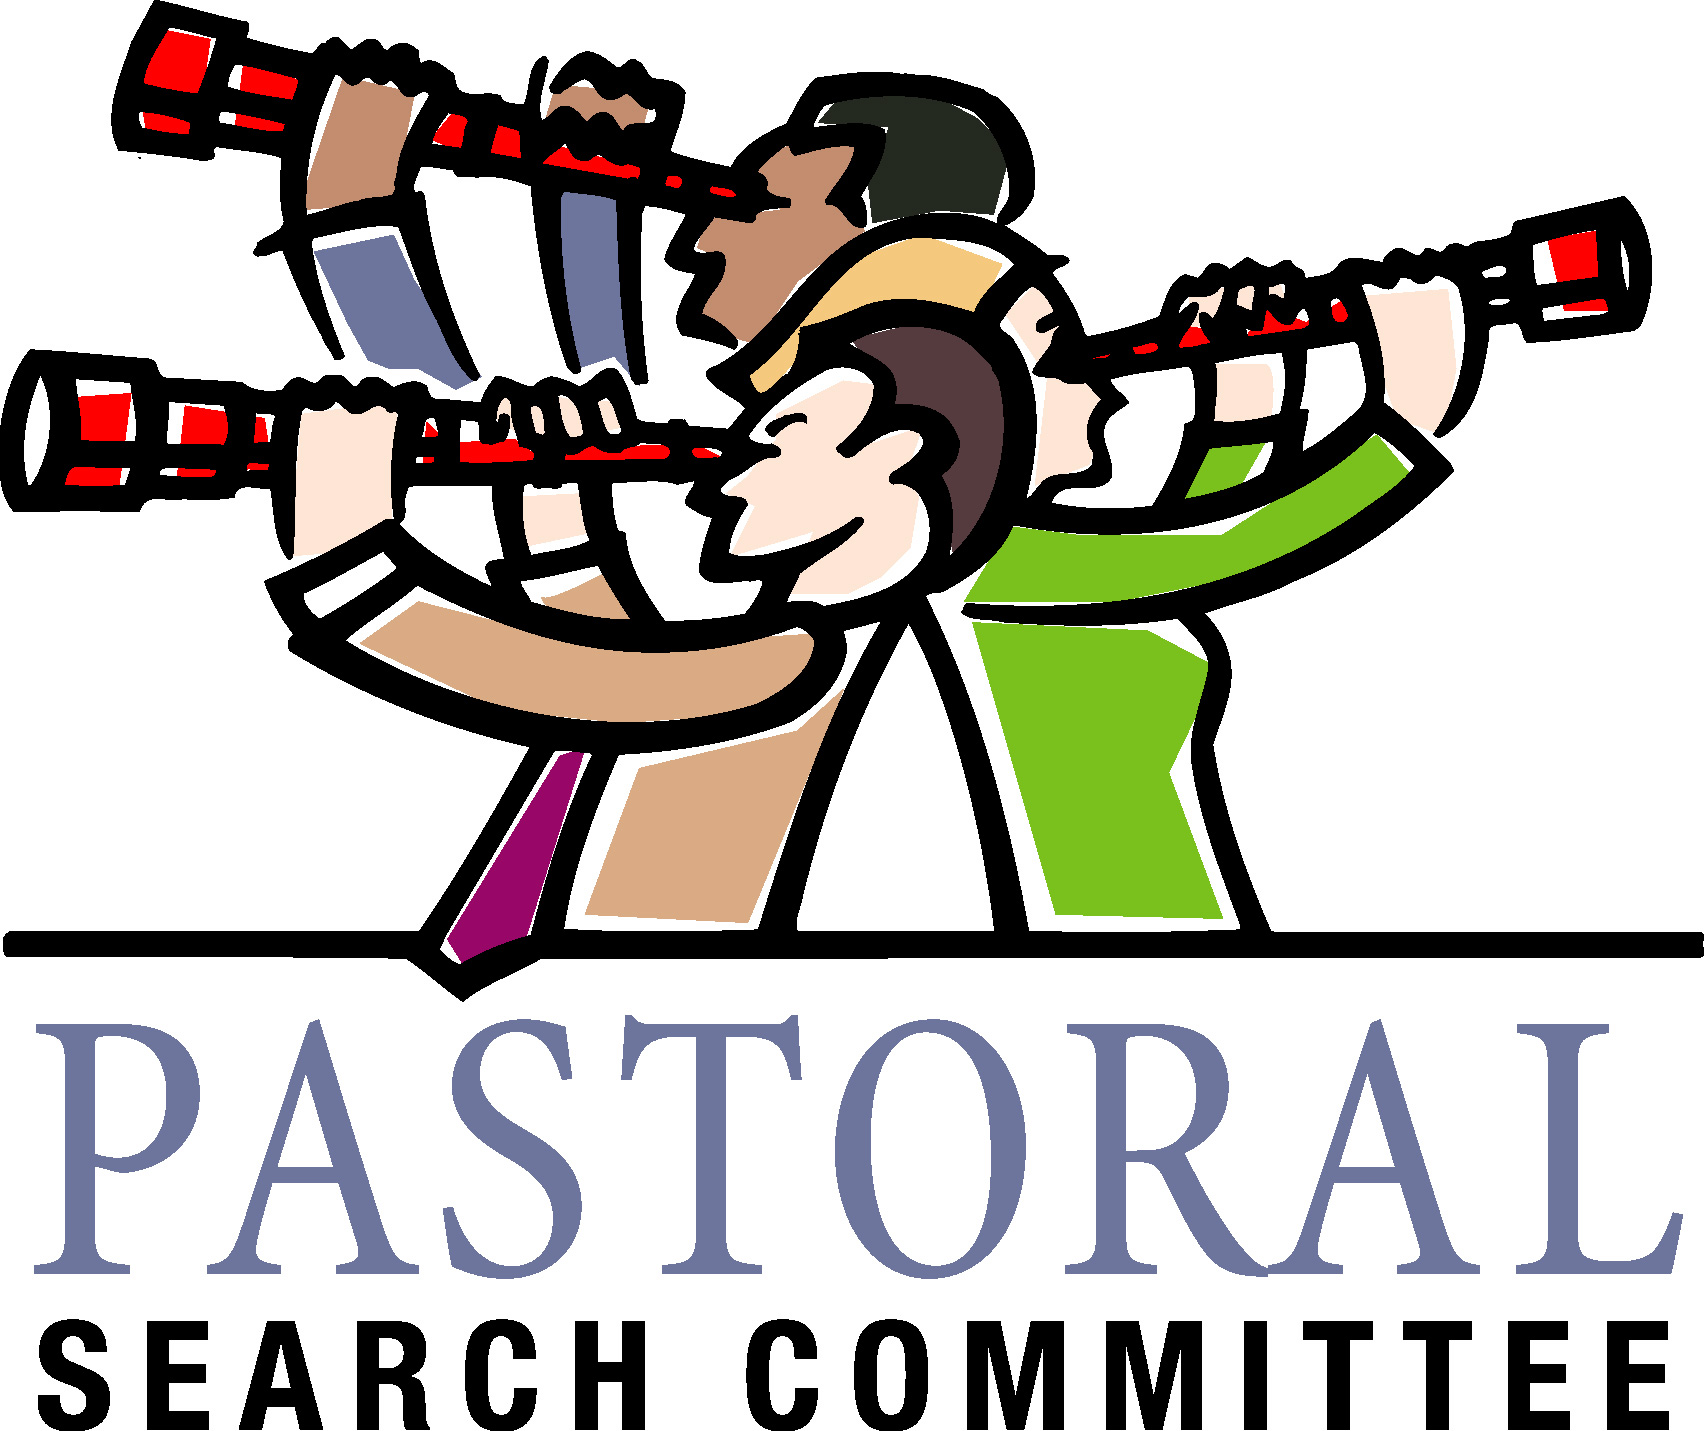 church pastor search committee clip art free image rh pixy org committee meeting clip art safety committee clip art